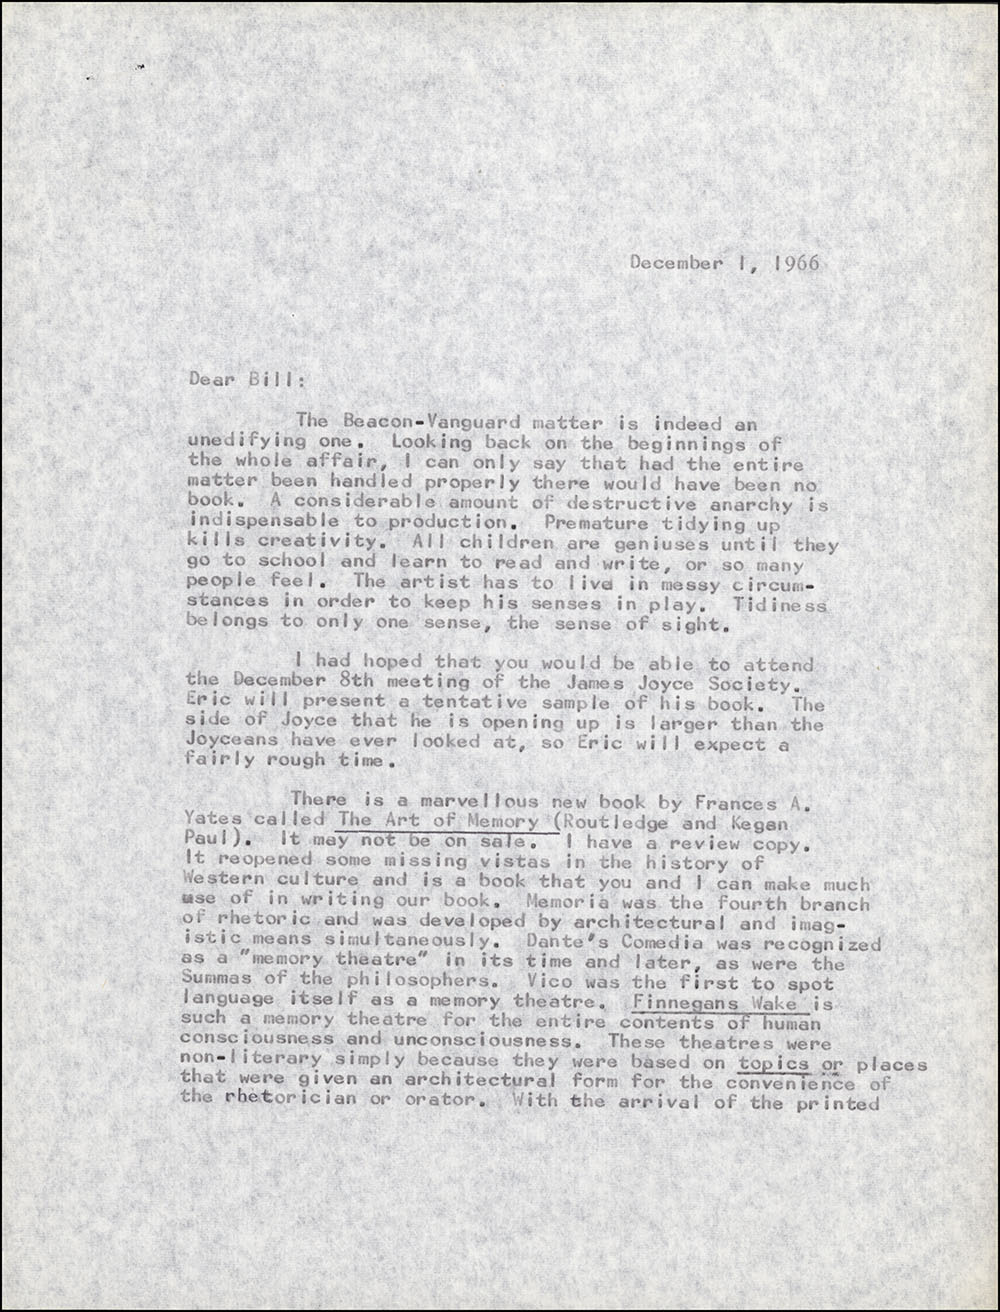 Letter dated December 1, 1966 to William Jovanovich, page 1